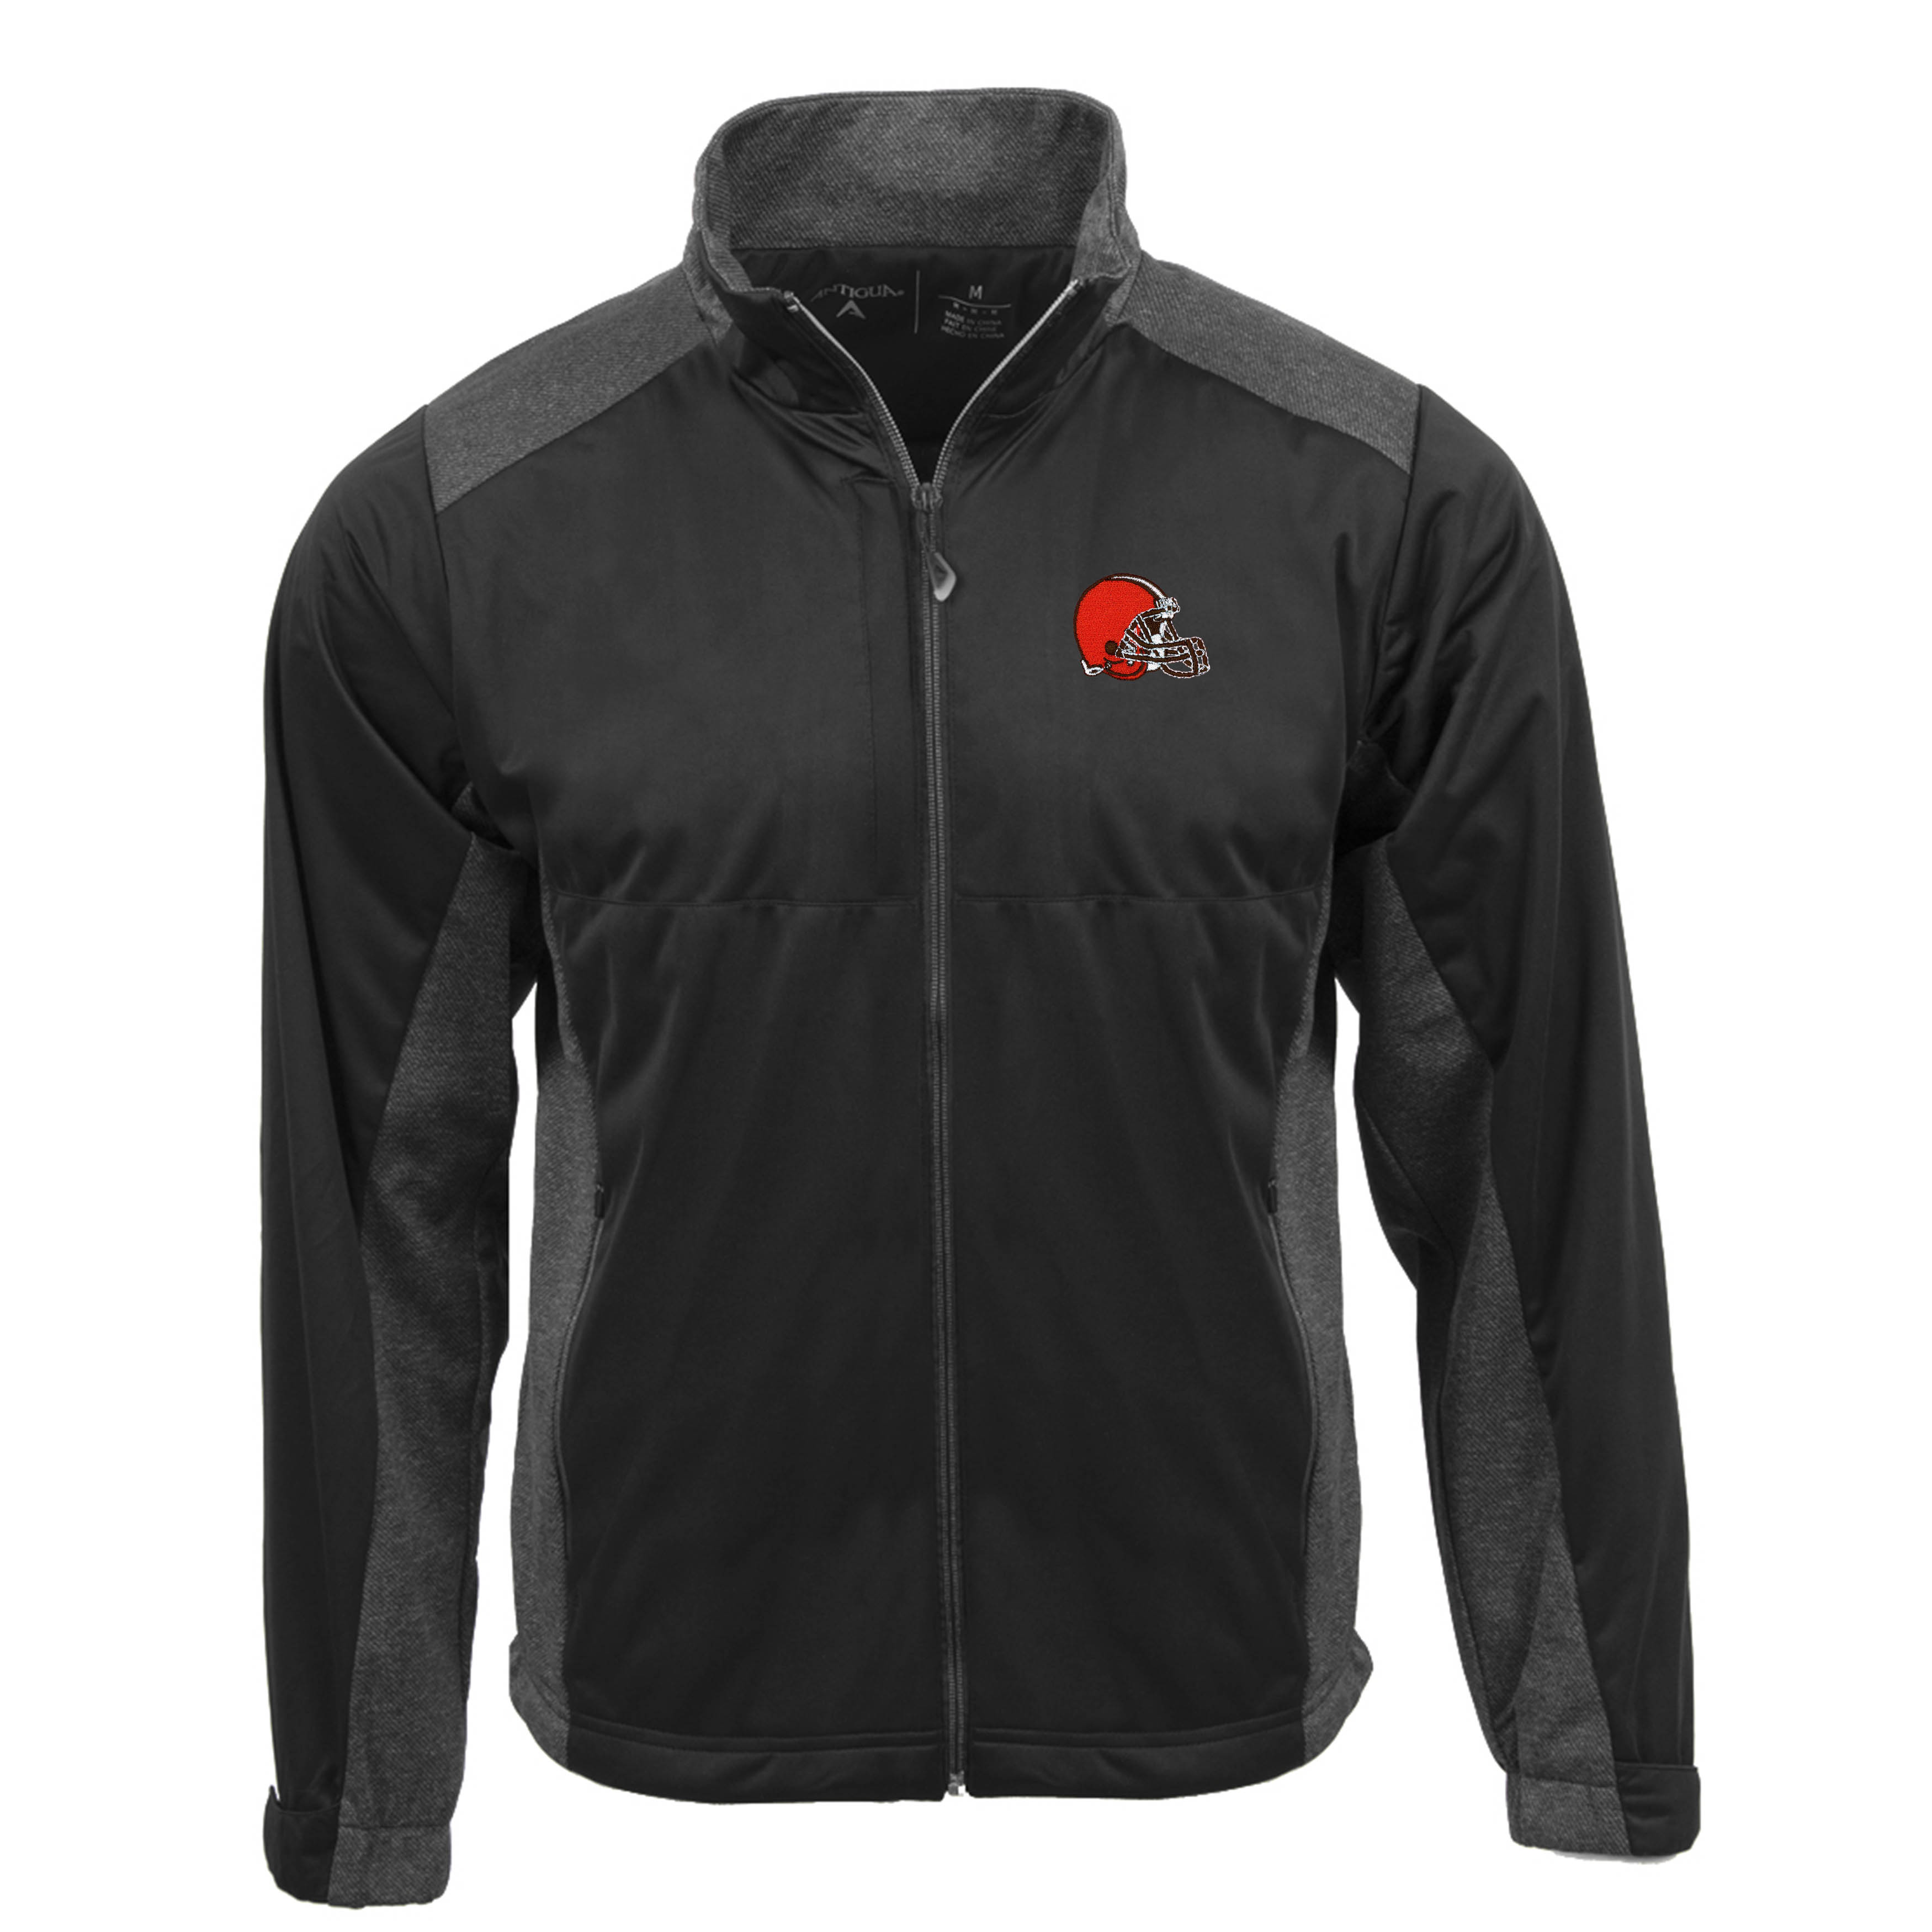 Cleveland Browns Antigua Revolve Full-Zip Jacket - Charcoal